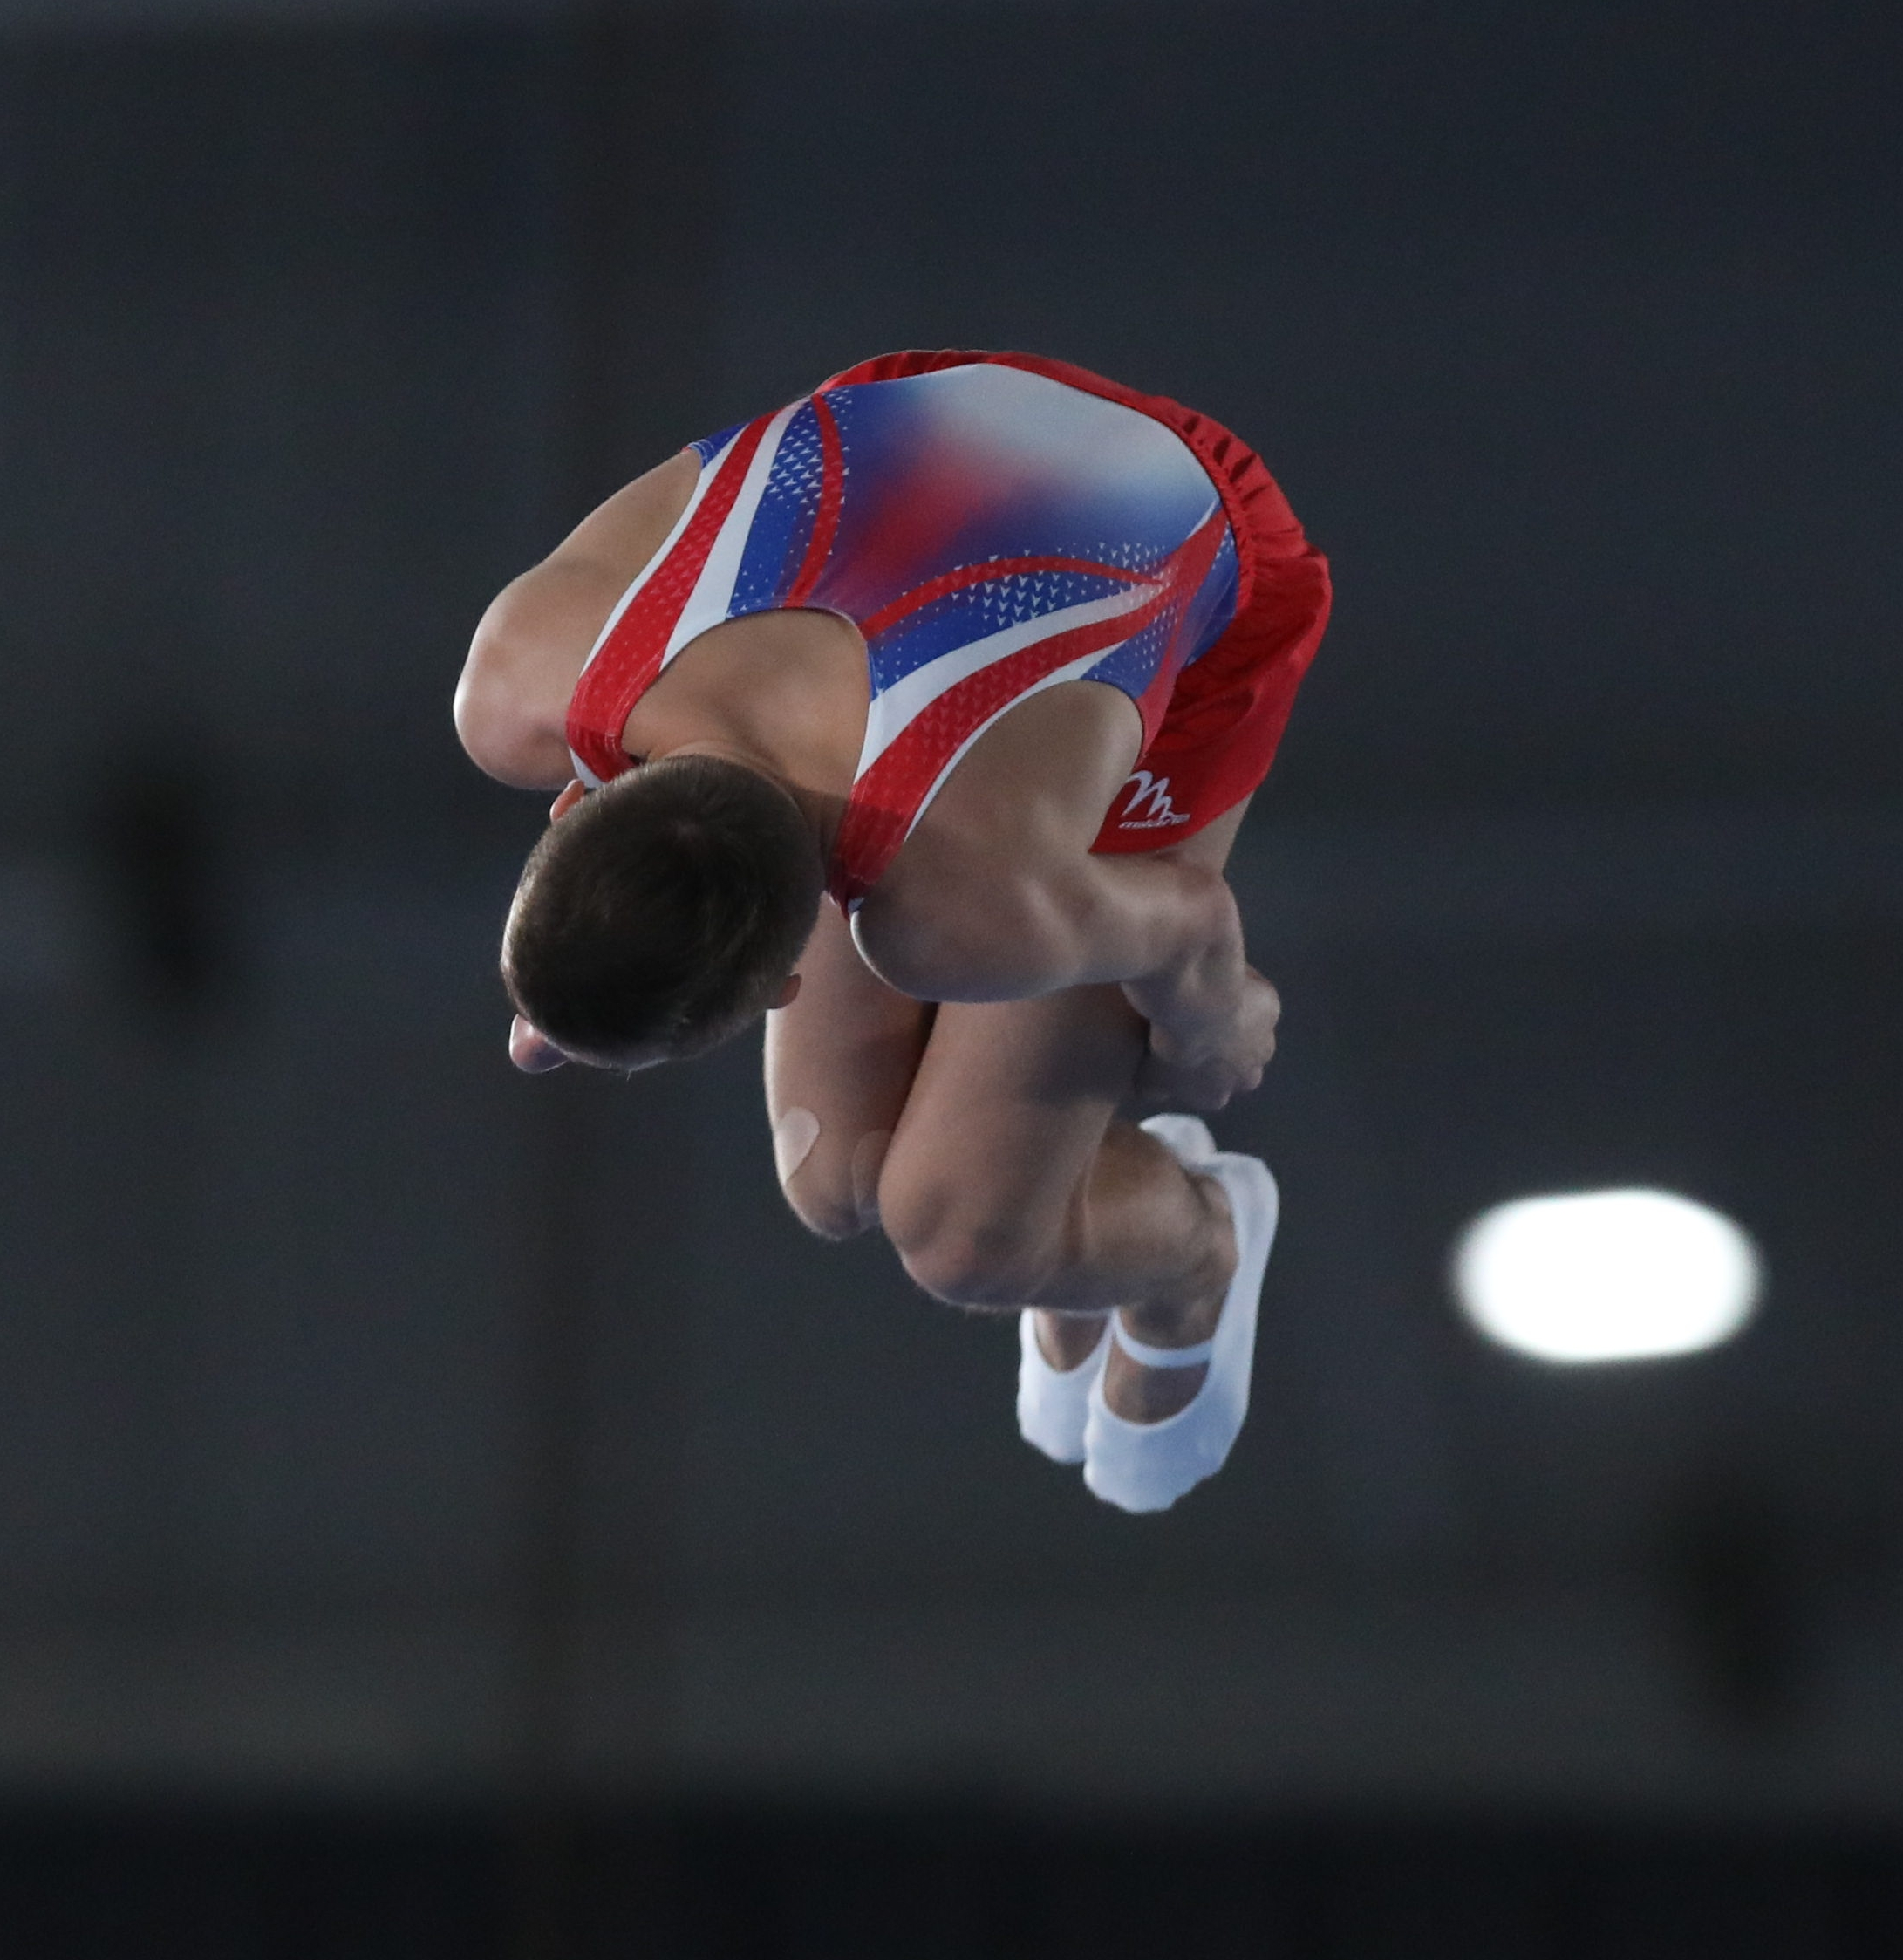 2018-10-14 Boys' Trampoline Gymnastics Final at 2018 Summer Youth Olympics by Sandro Halank-086.jpg Deutsch: Trampolinturnen männlich: Finale